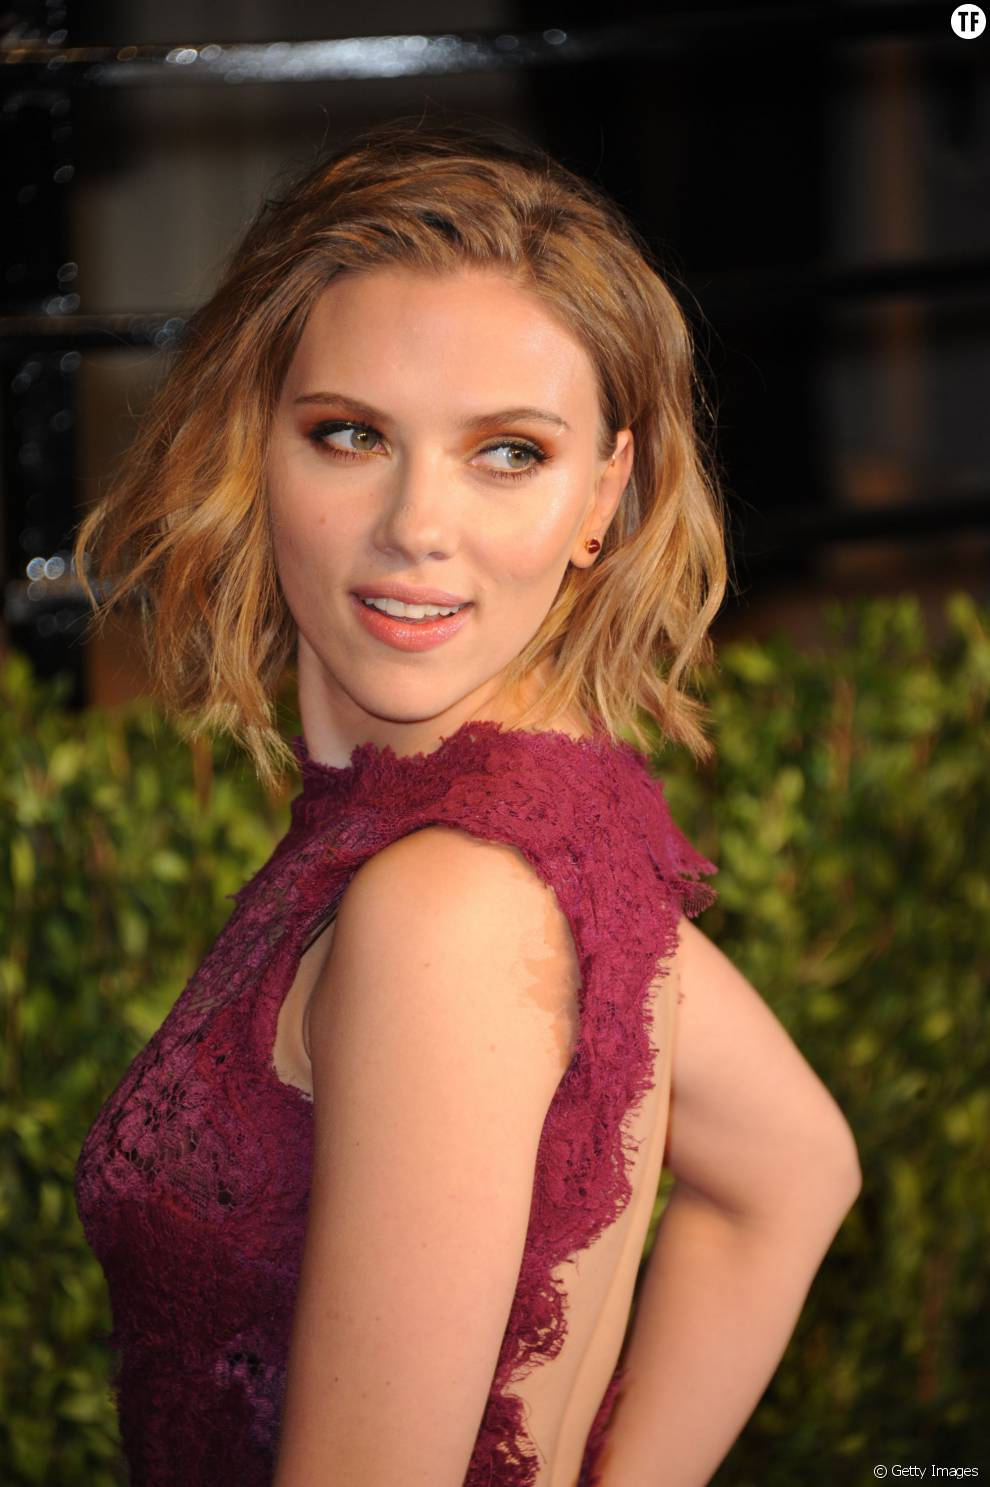 le carr ondul de l 39 actrice scarlett johansson. Black Bedroom Furniture Sets. Home Design Ideas